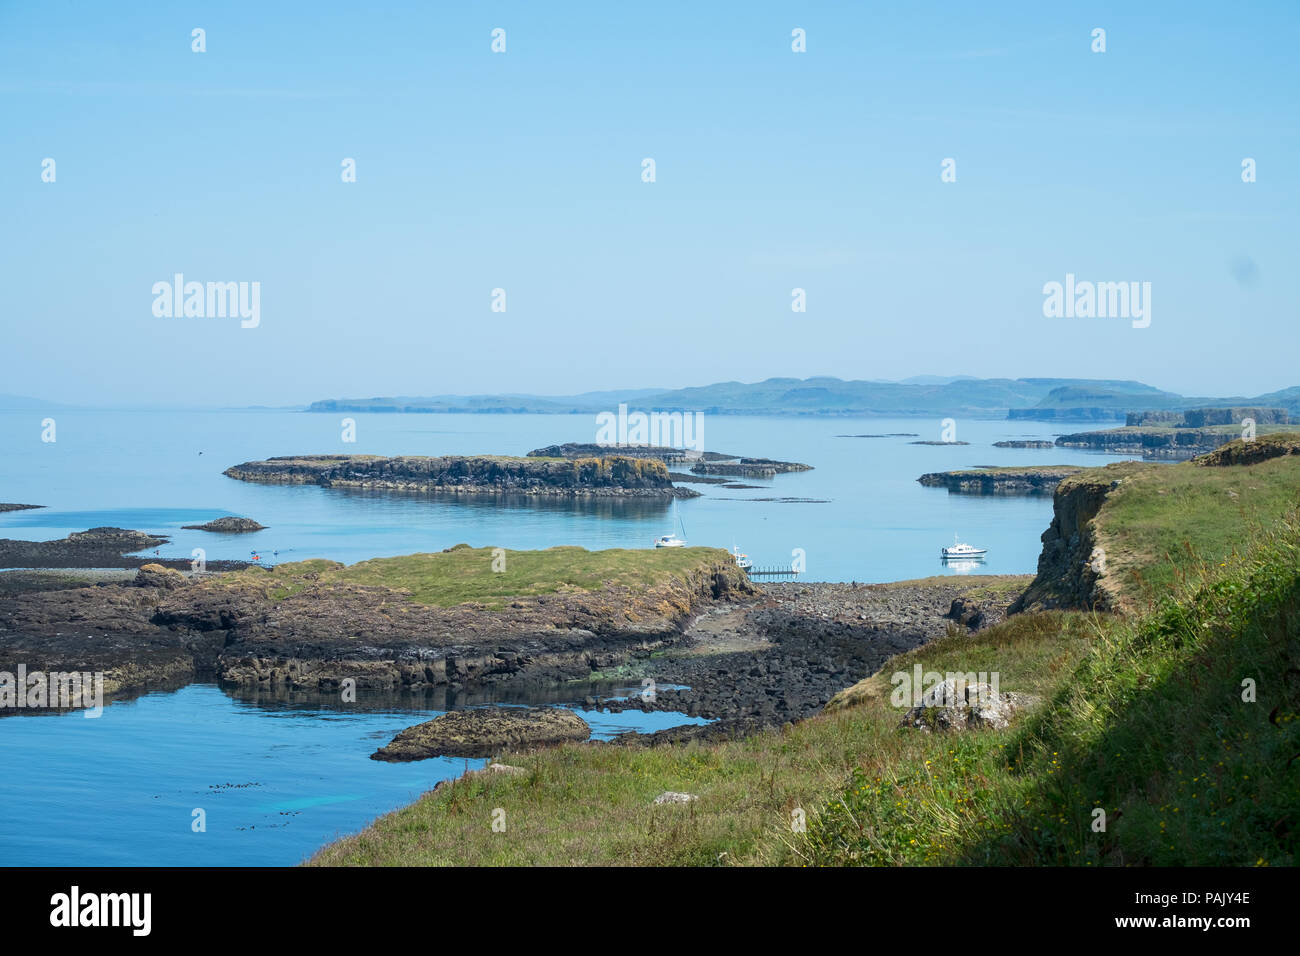 Harbour on Lunga, Treshnish Isles, from the clifftop. Small boats can be seen at anchor. Stock Photo